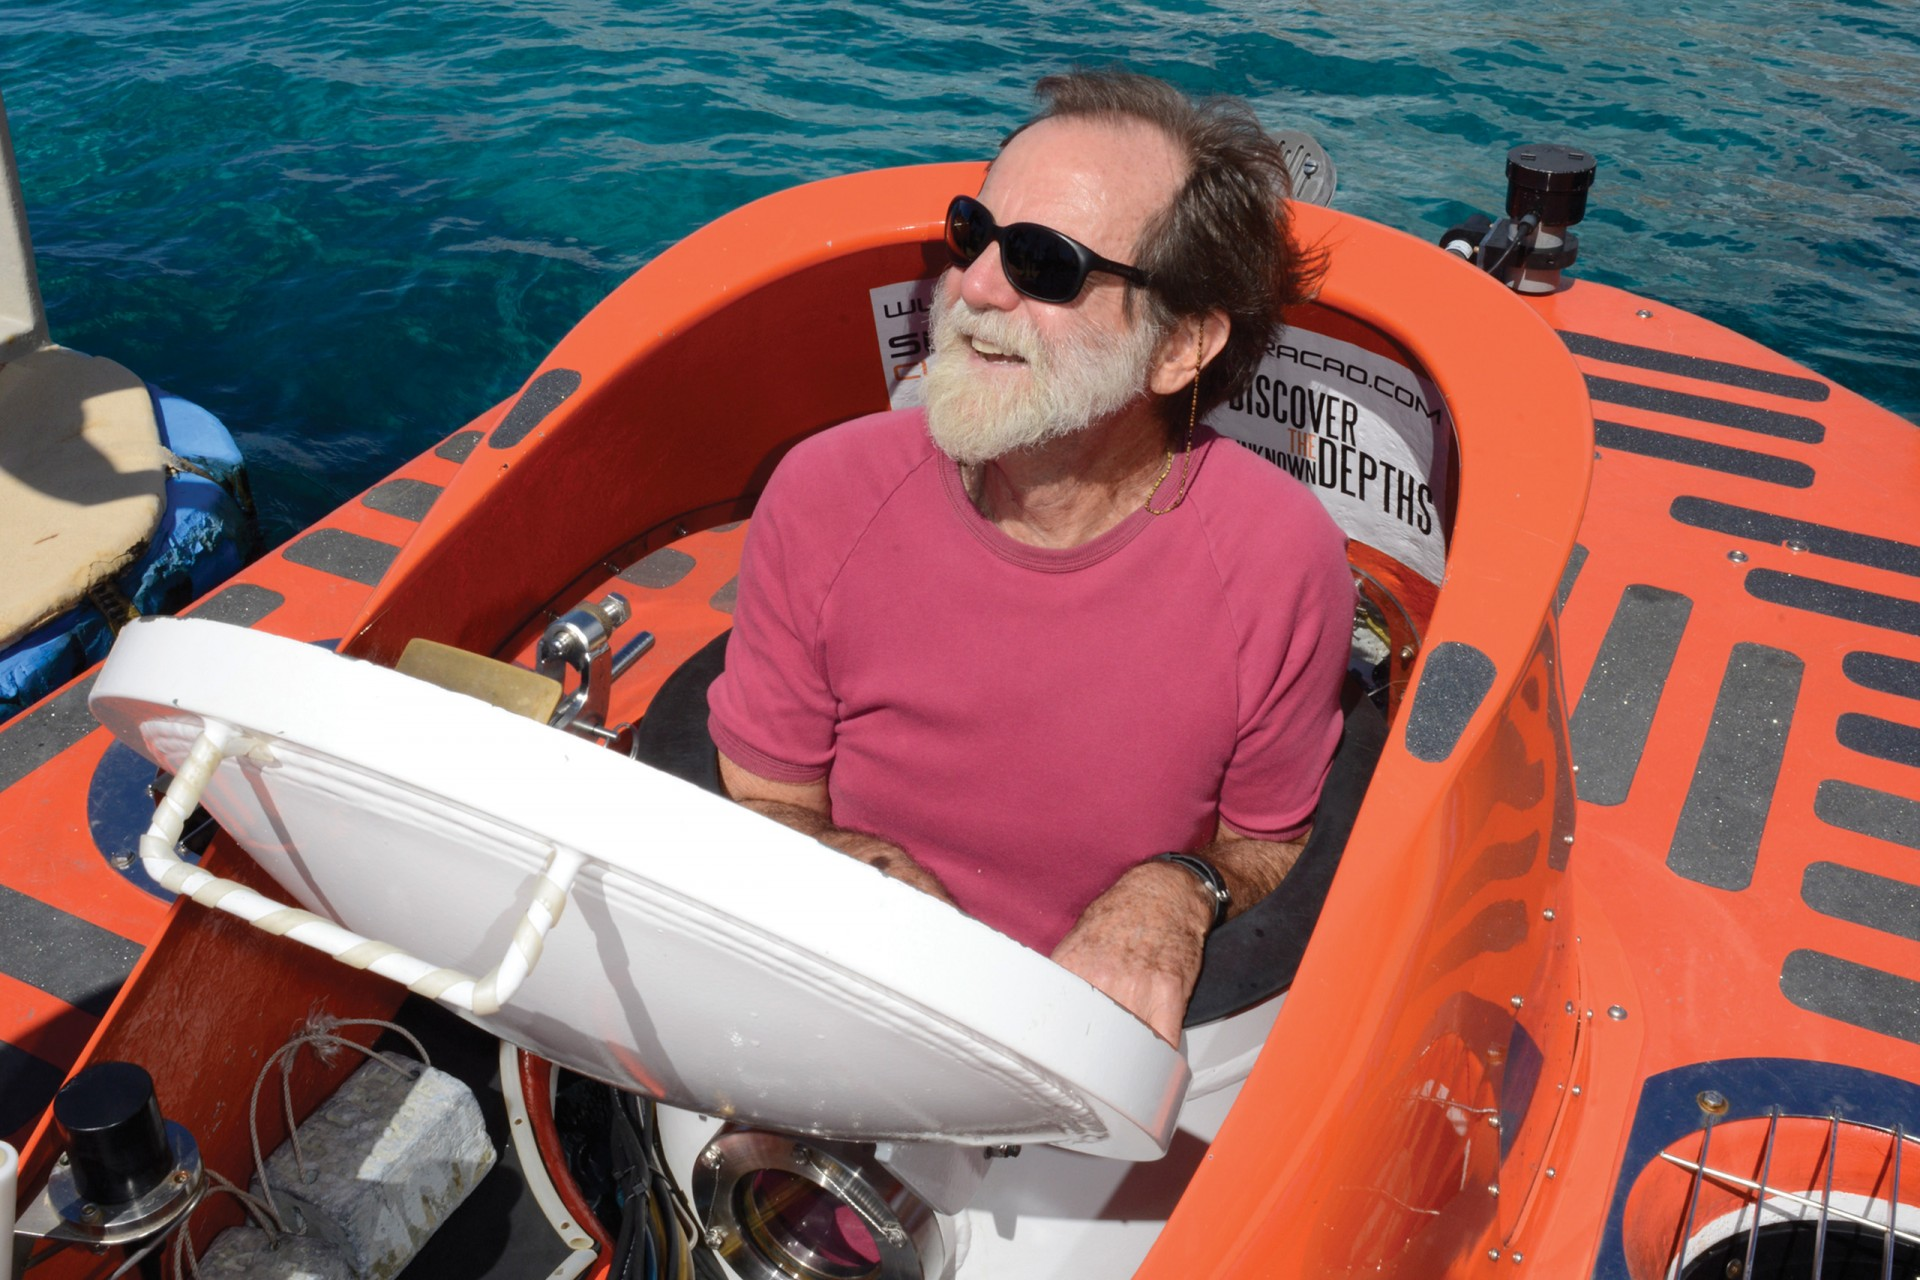 D. Ross Robertson, staff scientist at STRI in Panama, ready to dive in the Curasub